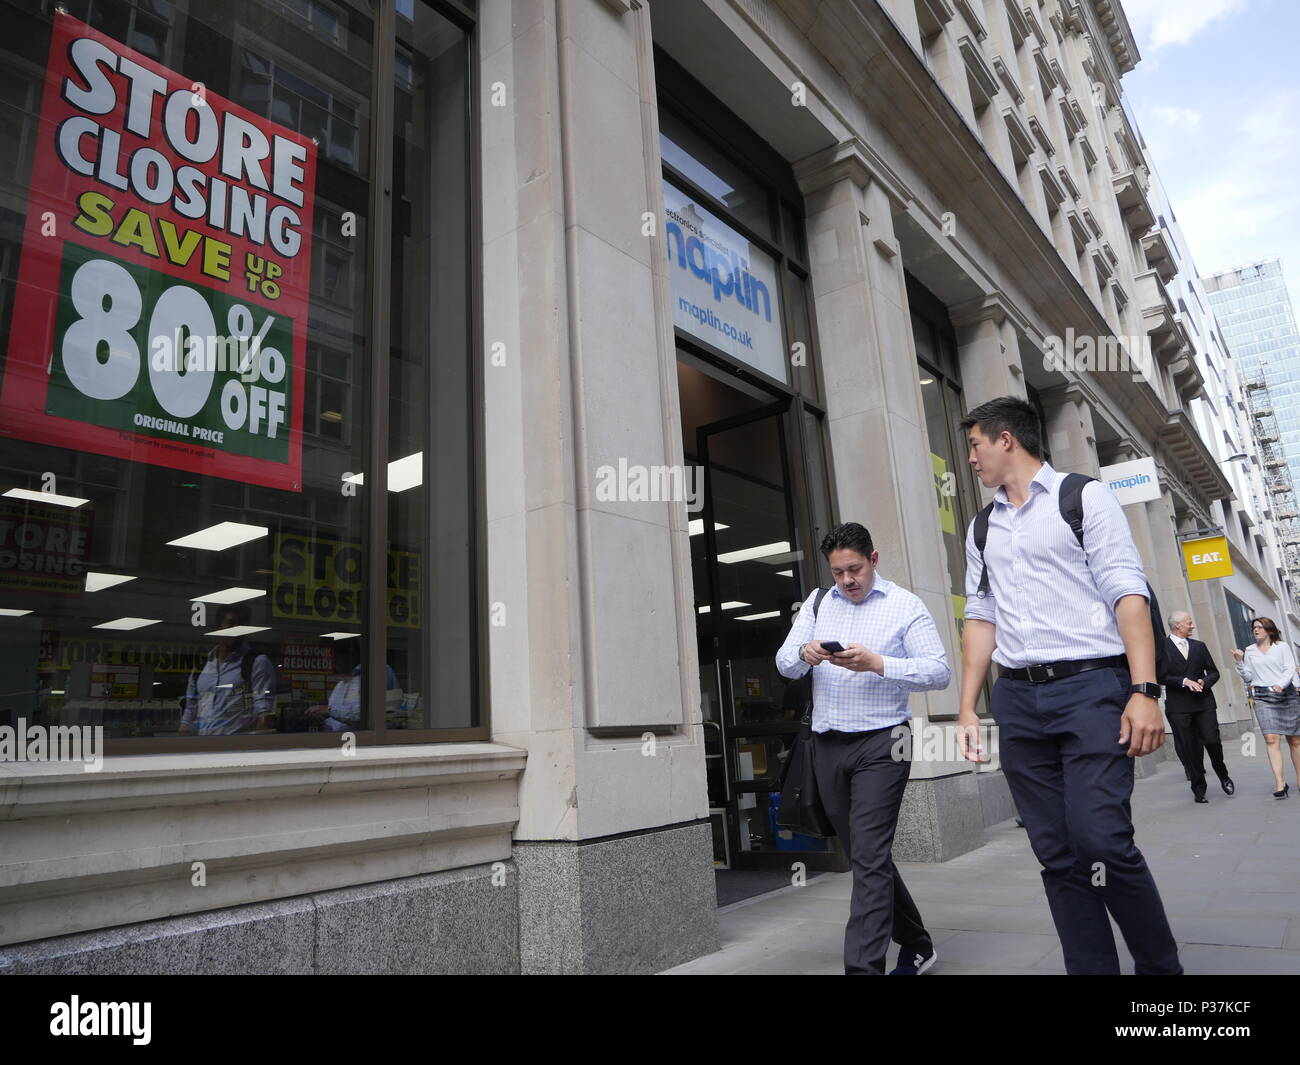 Maplins closing down, store closure sale, London - Stock Image